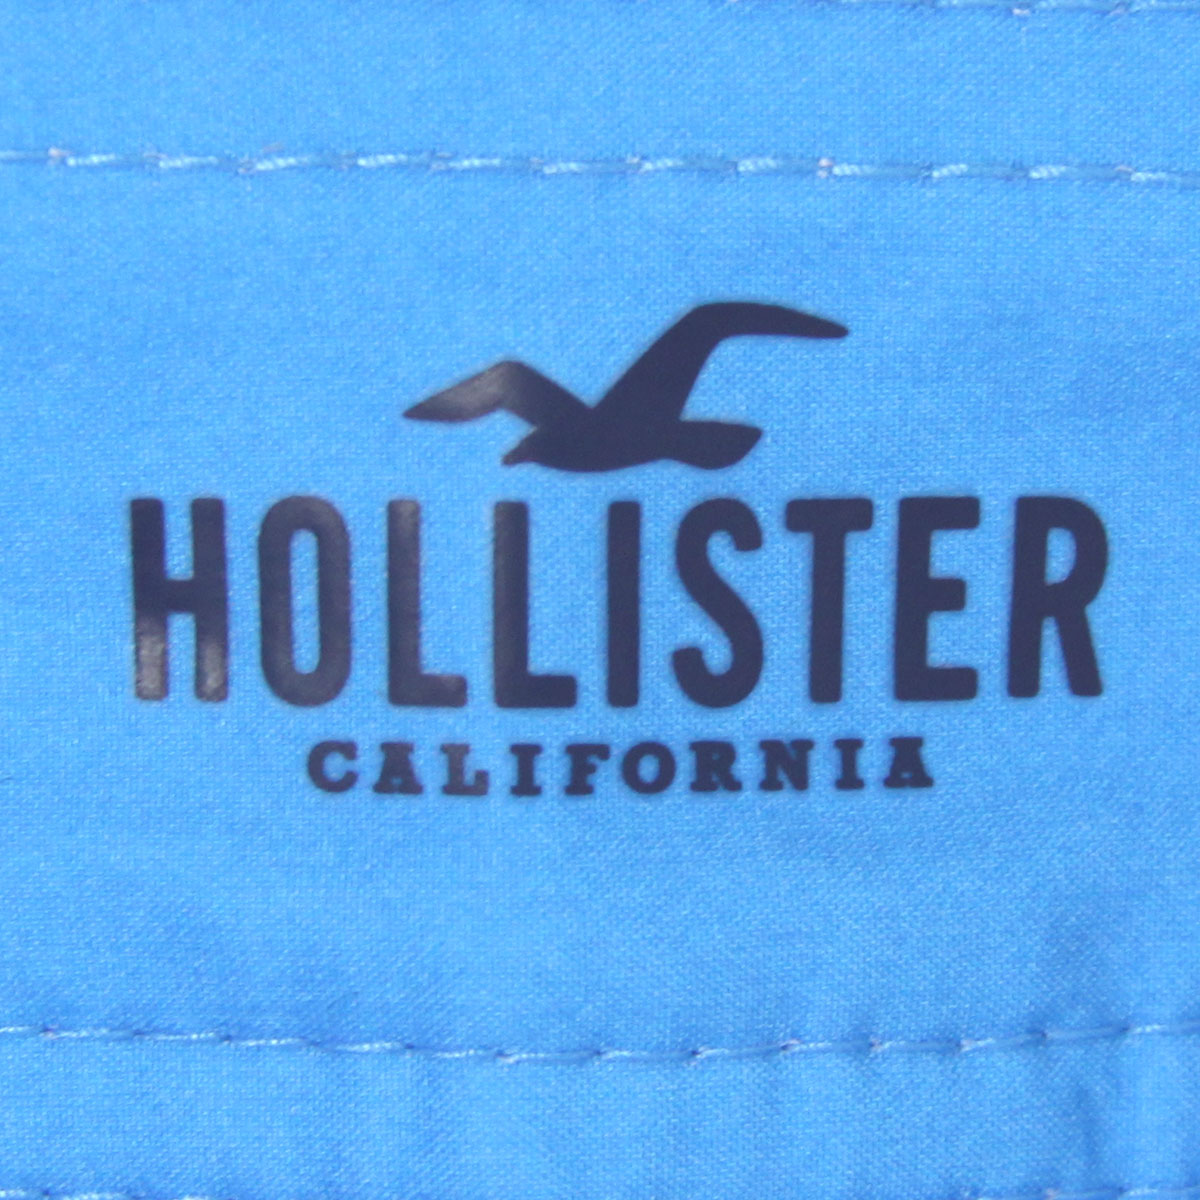 nice hollister live chat #2: A Little Pricey Delightful Hollister Live Chat #10: Hori Star HOLLISTER  Regular Article Men Swimsuit Swimming Underwear · «